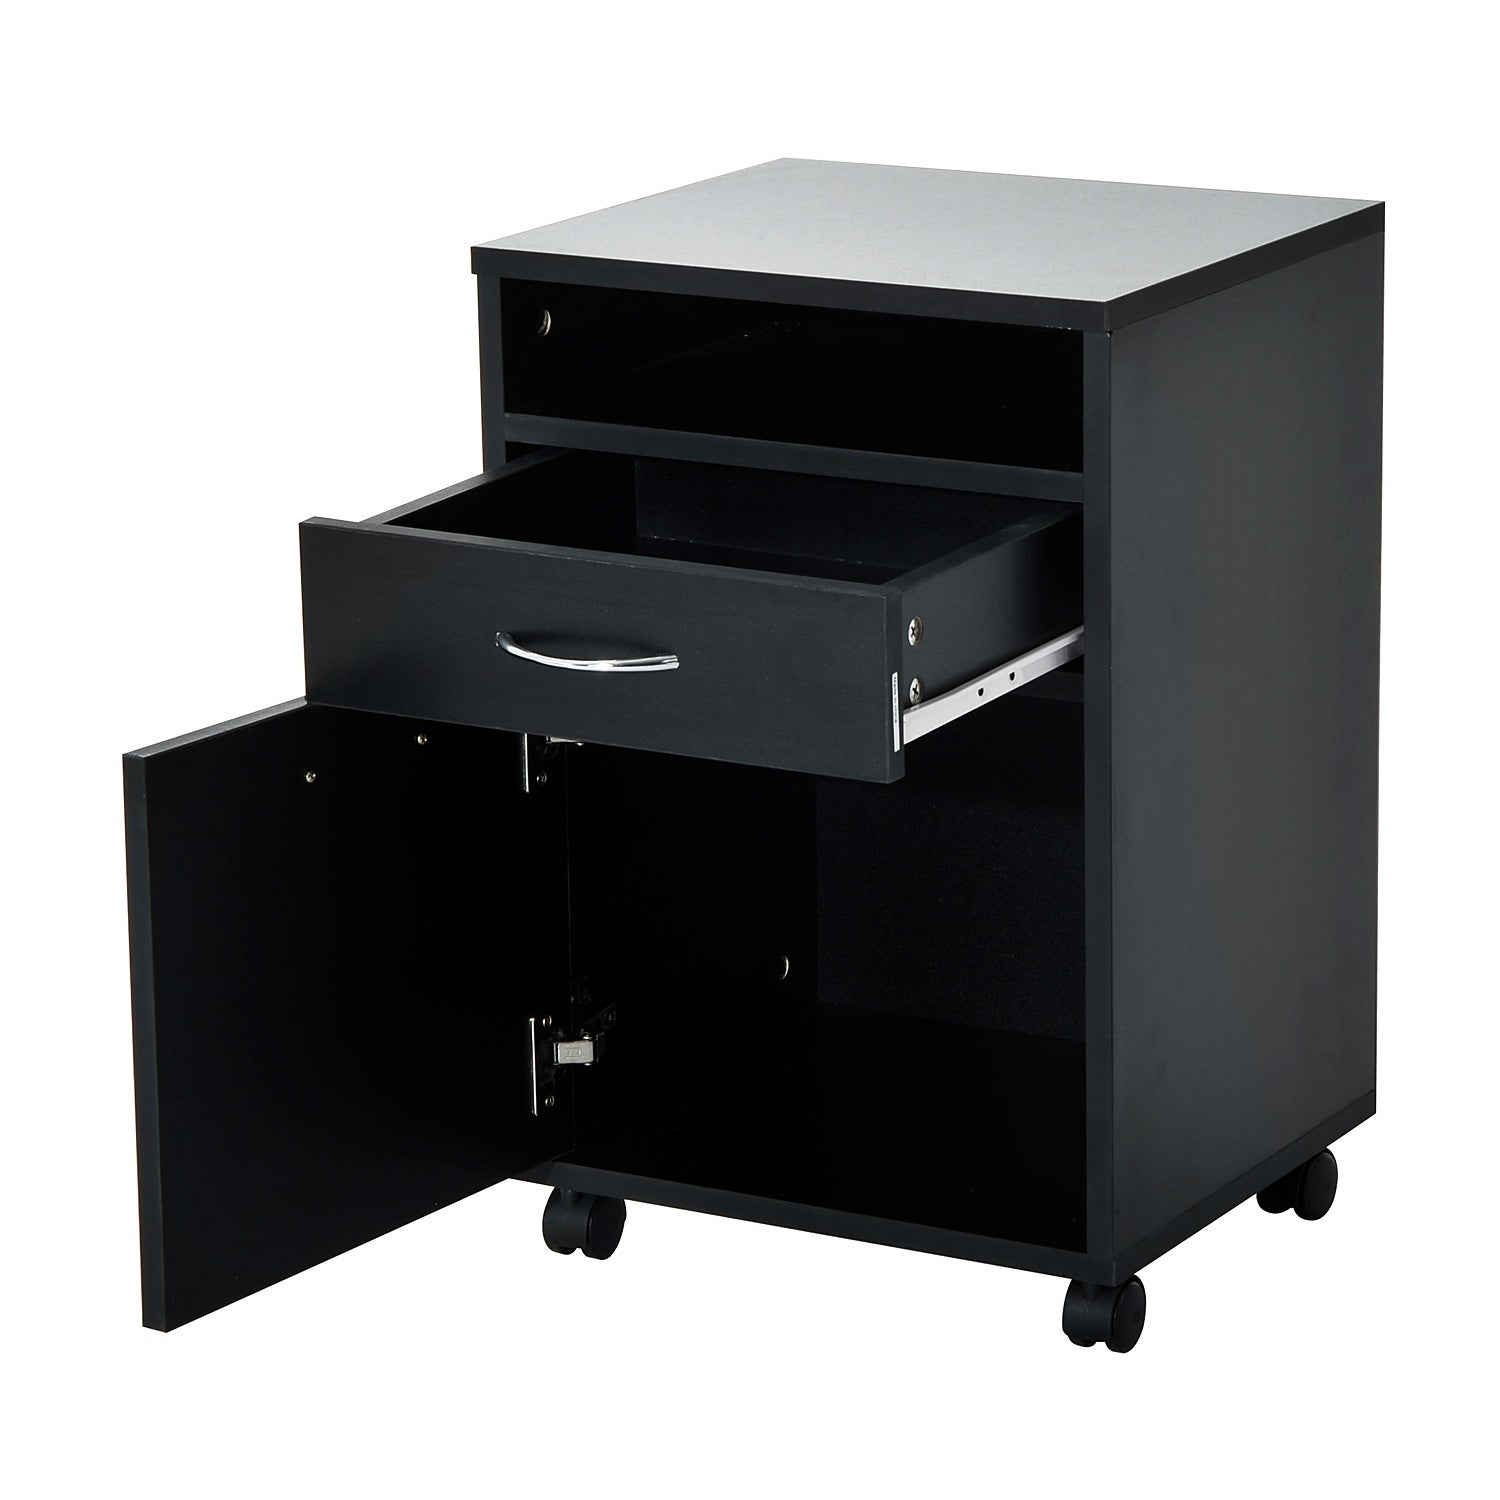 Homcom 24 Rolling End Table Mobile Printer Cart Nightstand Organizer Black Free Shipping Today 18087022